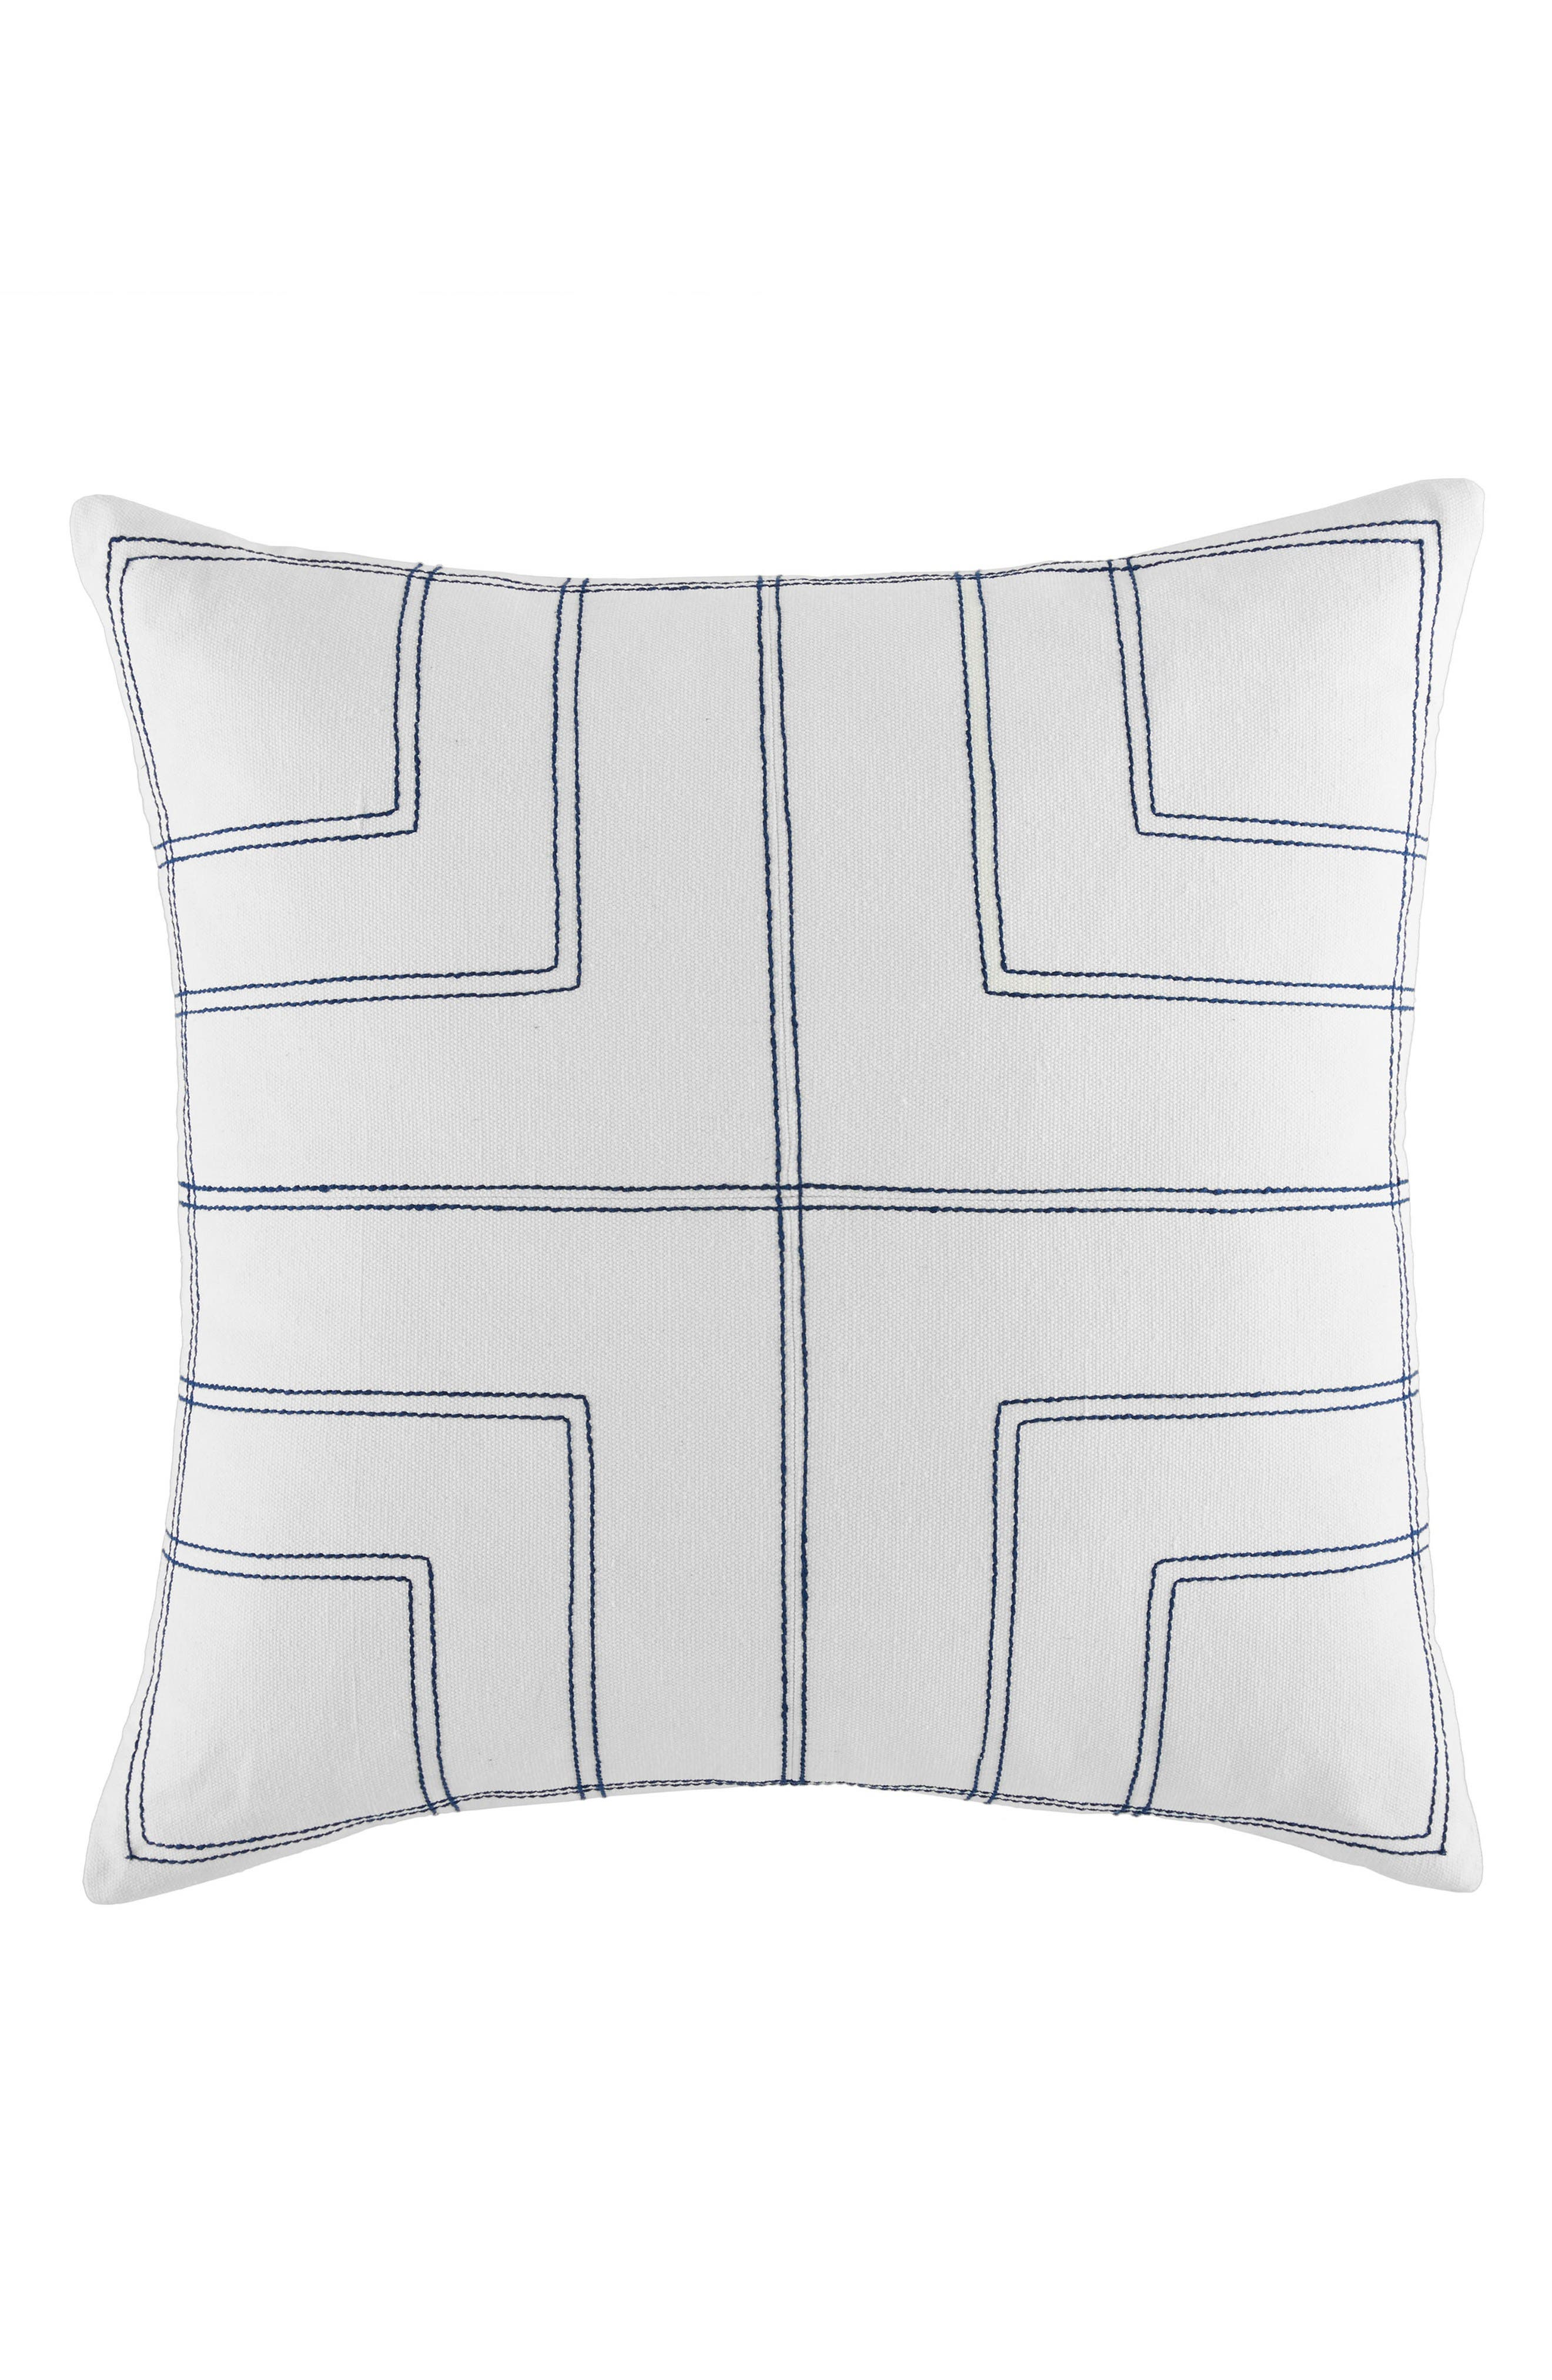 Alternate Image 1 Selected - Tommy Hilfiger Quadrant Accent Pillow